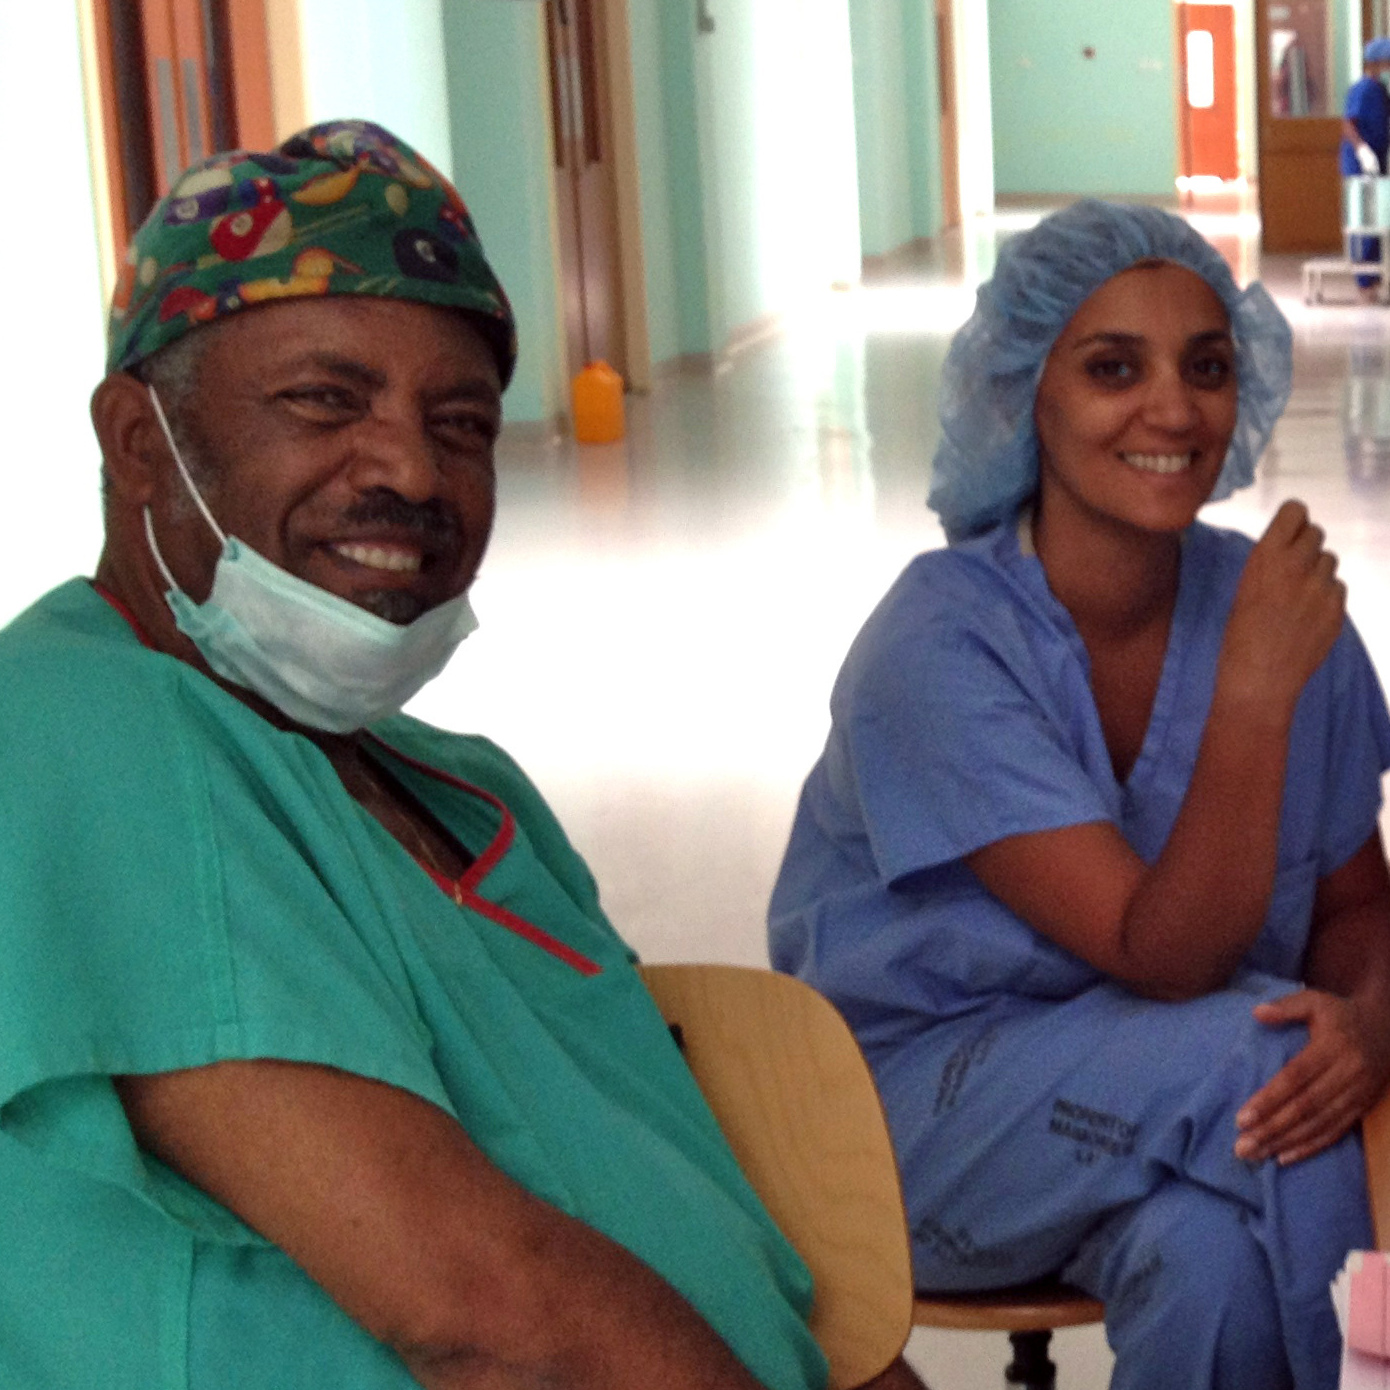 Dr. Ambereen Sleemi (second from the left) traveled to Eritrea to help start an obstetrics training program. Here she relaxes in the new ward with Dr. Haile Habte Melecot (from left), a resident student and Dr Dawit Sereke.